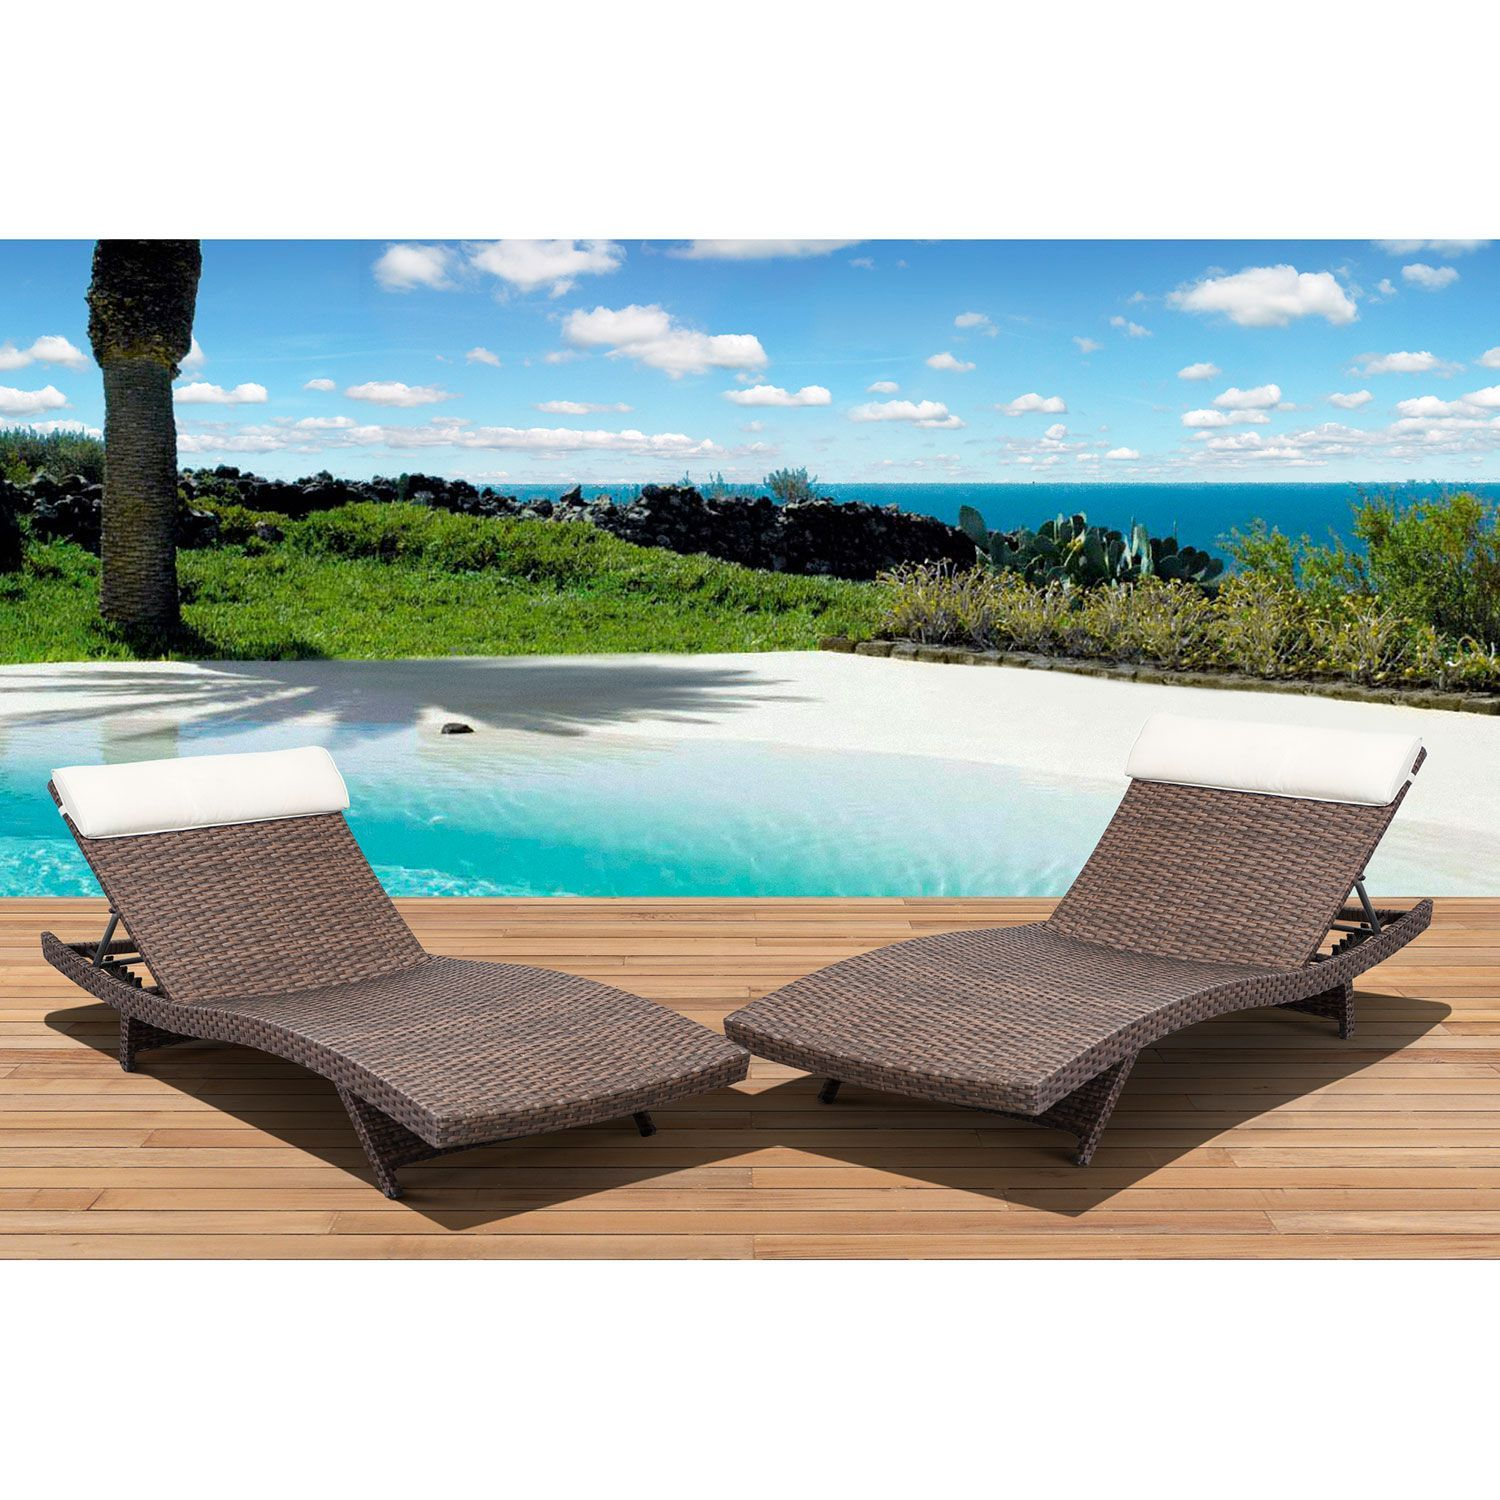 Cavalier Brown Synthetic Wicker Patio Lounge Chair with OffWhite – White Wicker Lounge Chair